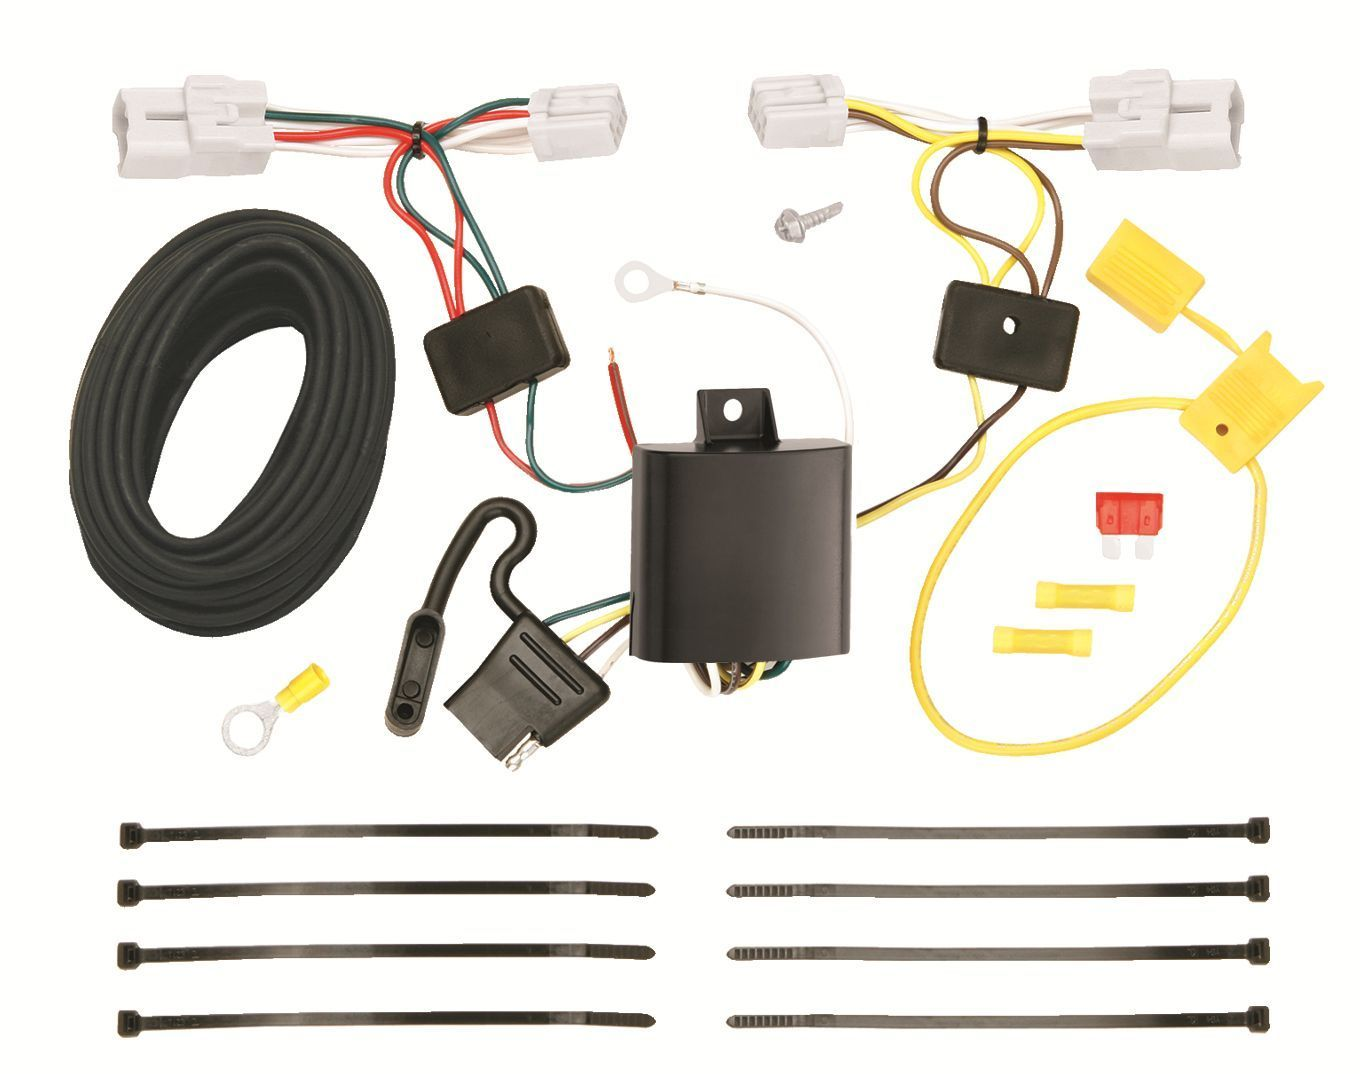 TRAILER HITCH WIRING KIT FITS 2012 HYUNDAI ACCENT HARNESS PLUG PLAY DIRECT T-ONE